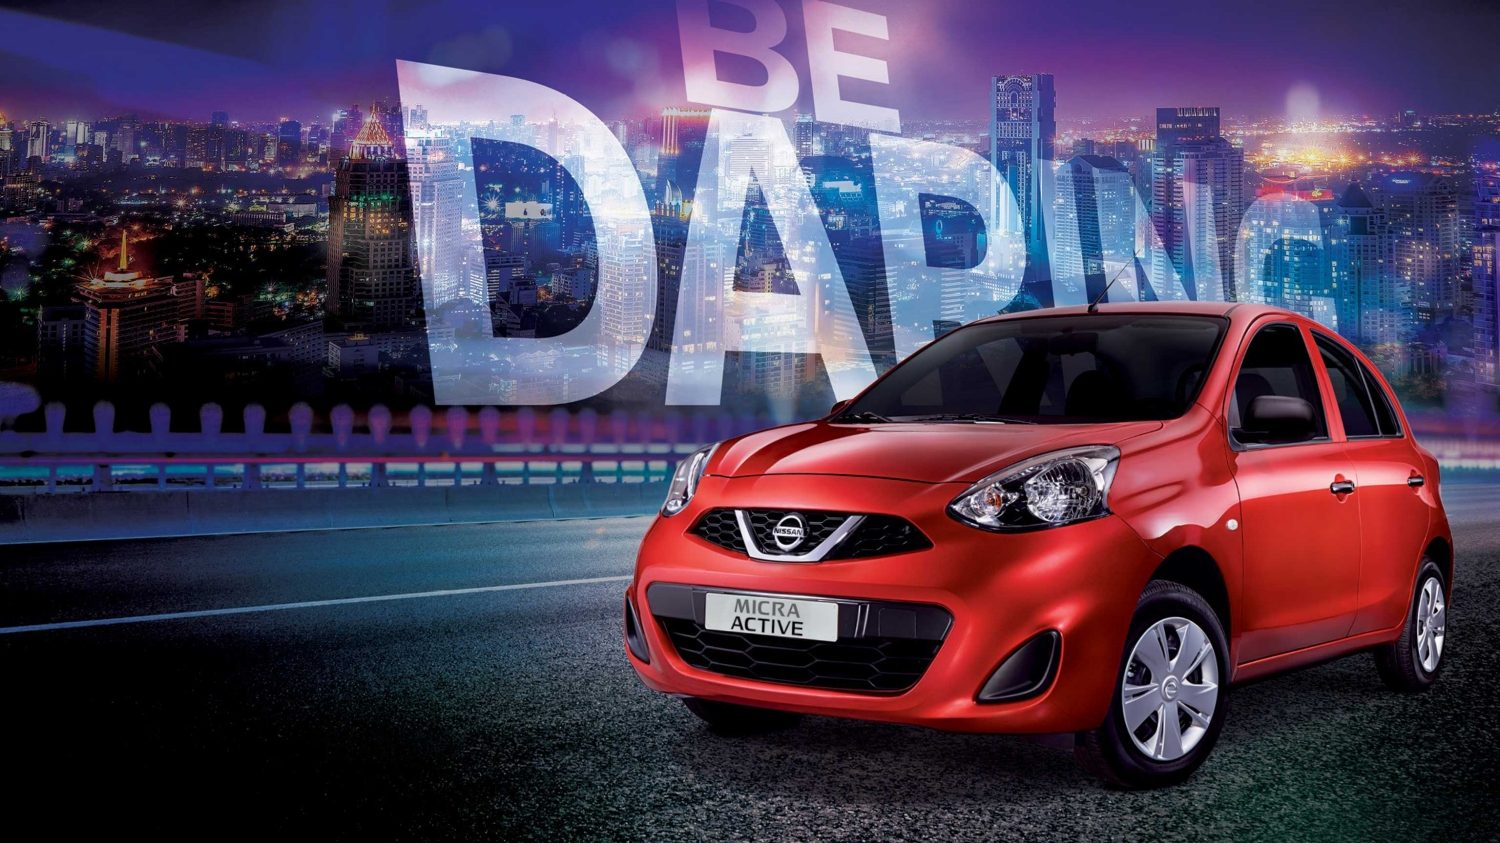 Micra ACTIVE offers